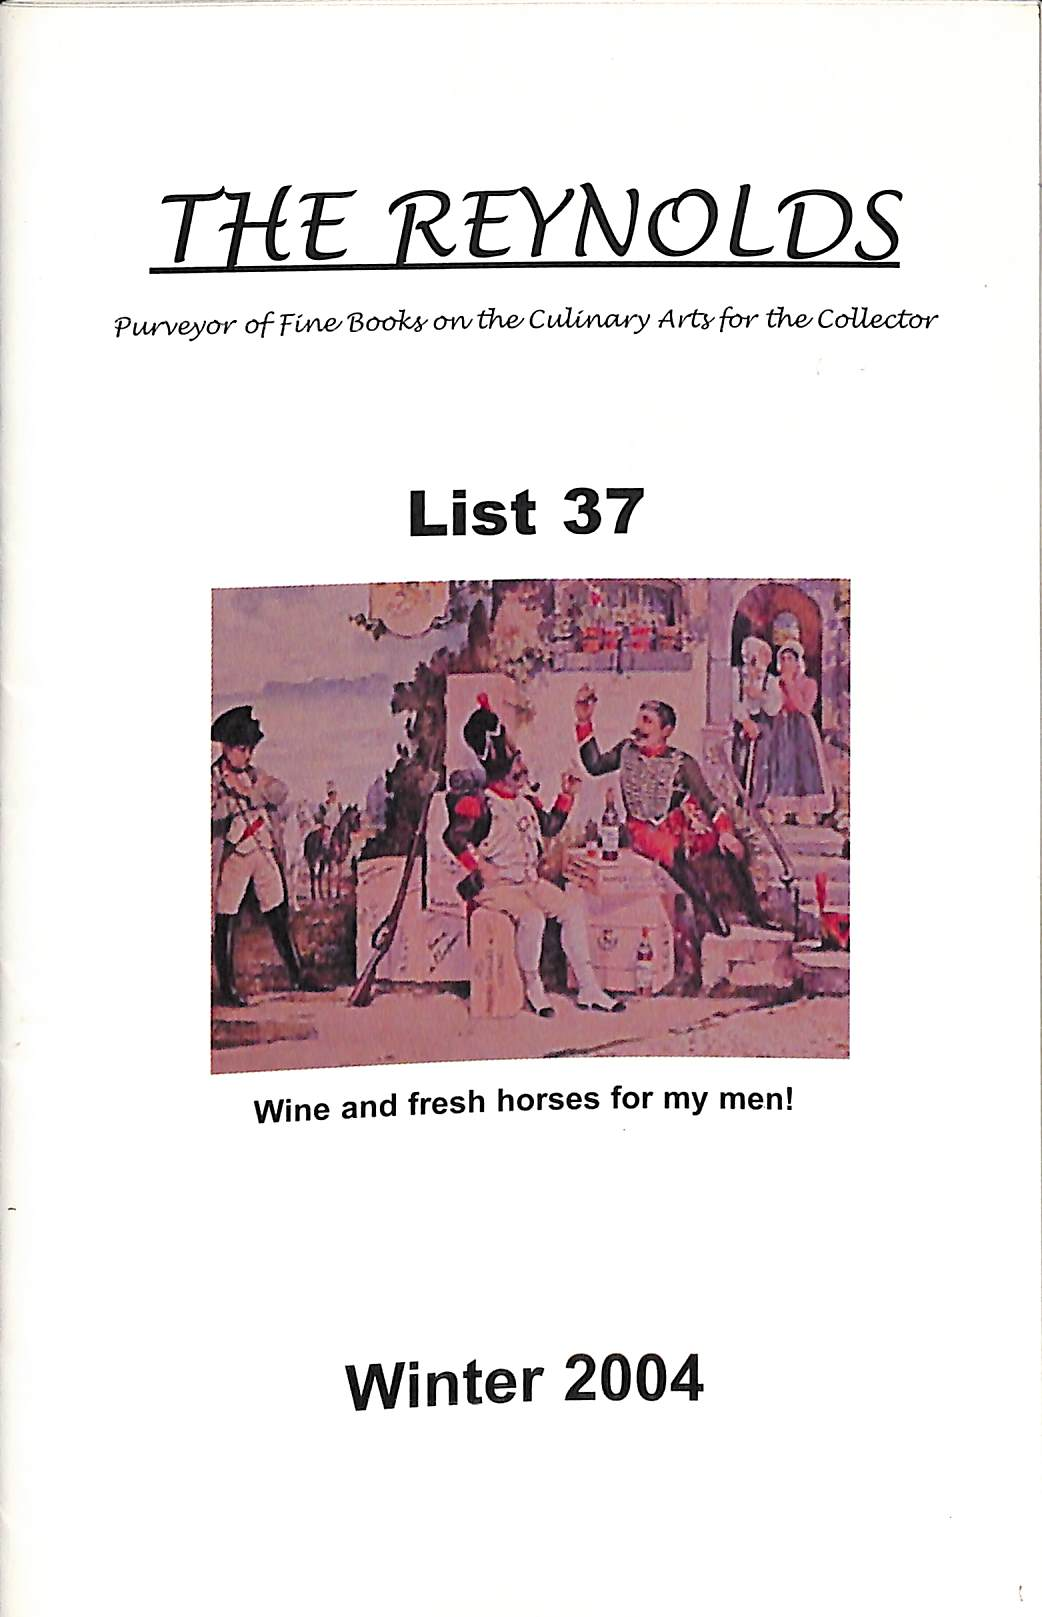 The Reynolds: Purveyor of Fine Books on the Culinary Arts for the Collector: List 37